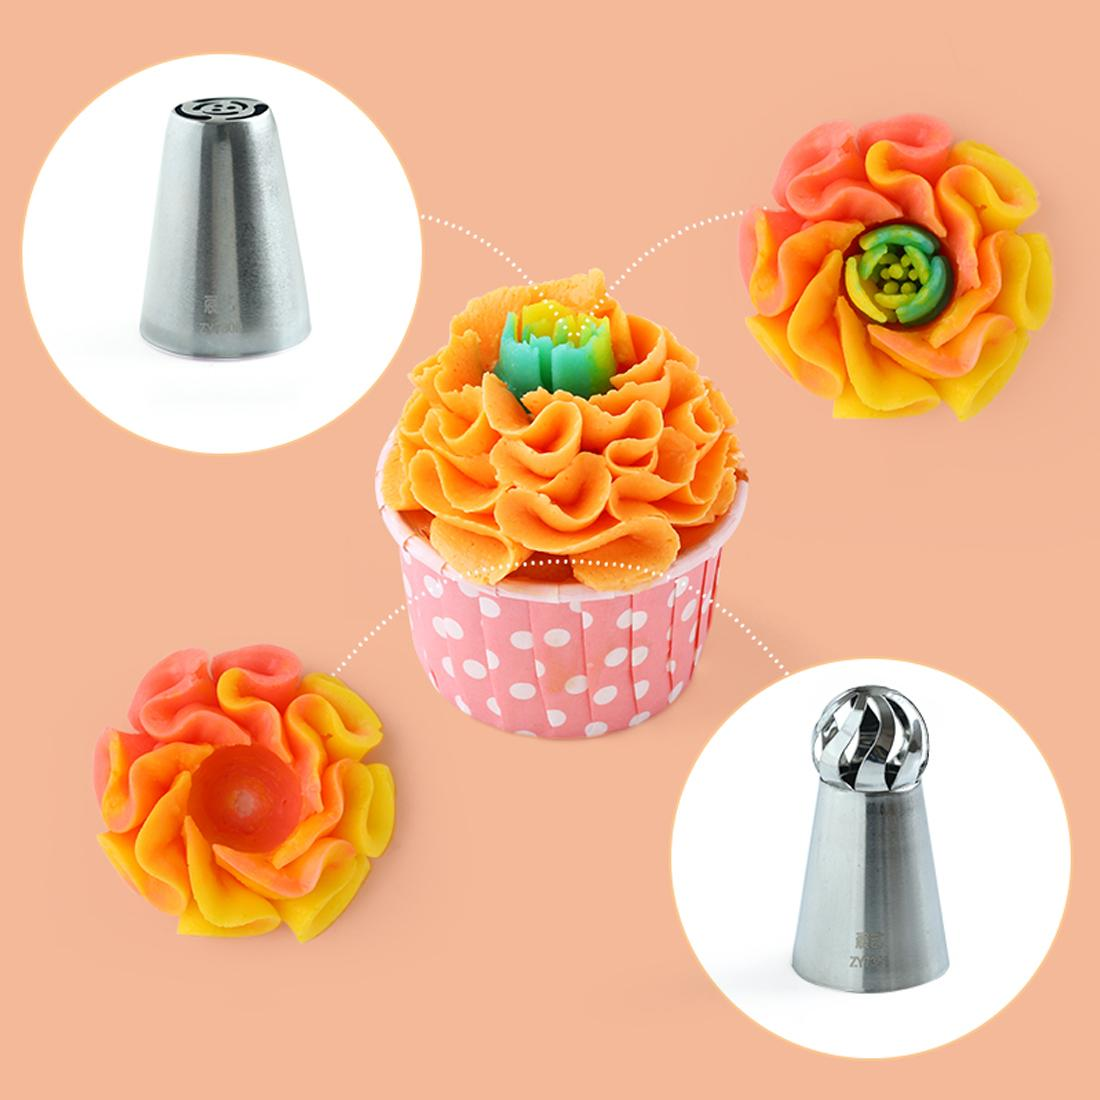 Cake Decorating Stainless steel Large Icing Piping Pastry Nozzles Pastry Tips Kitchen Accessories Baking Cake decor X